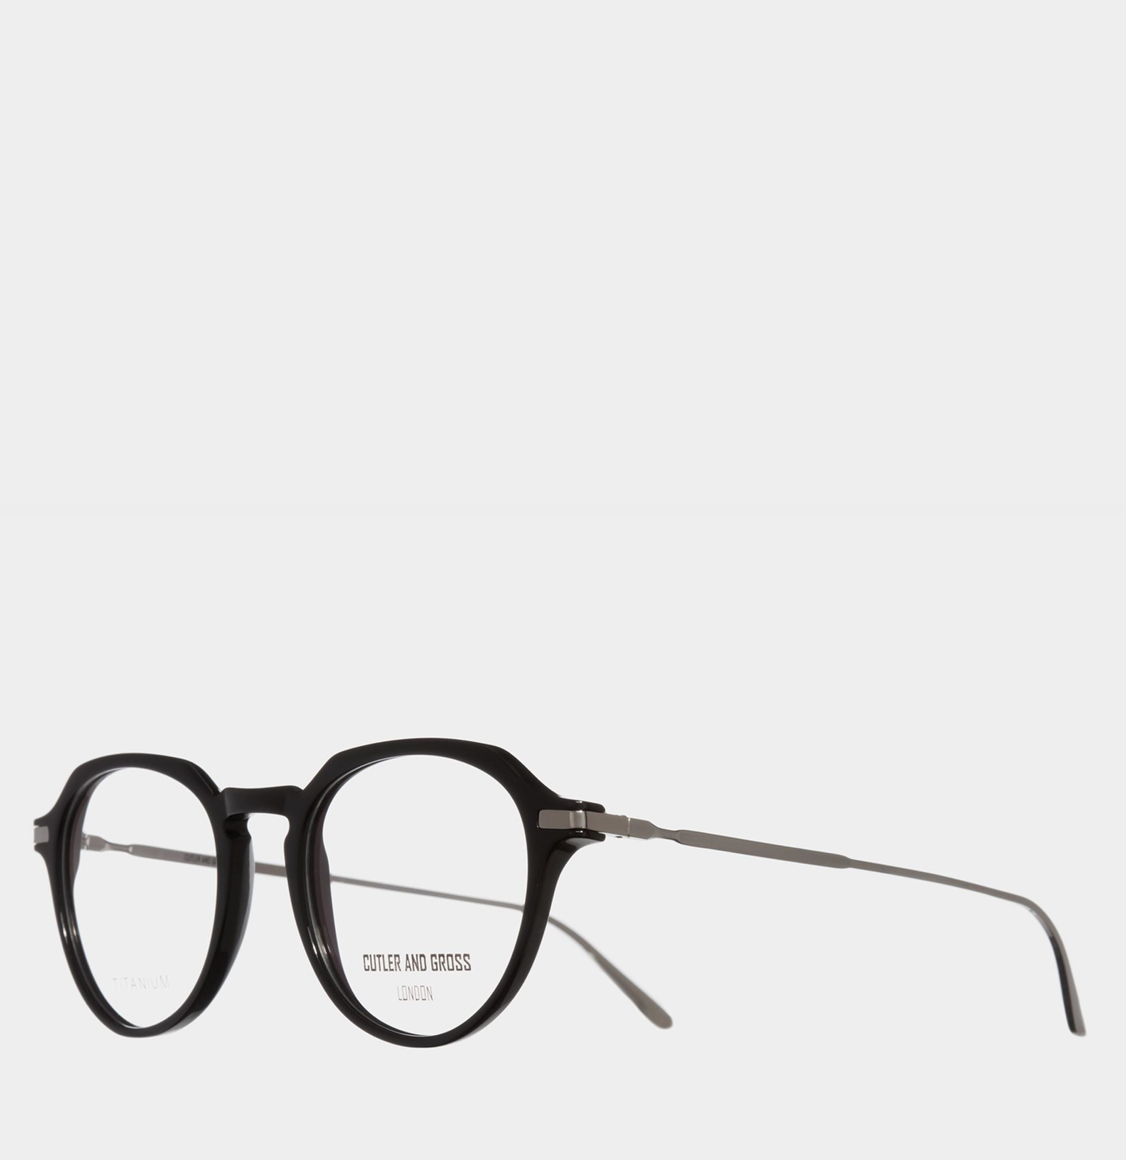 Cutler and Gross Round-Frame 1303 Black Optical Glasses